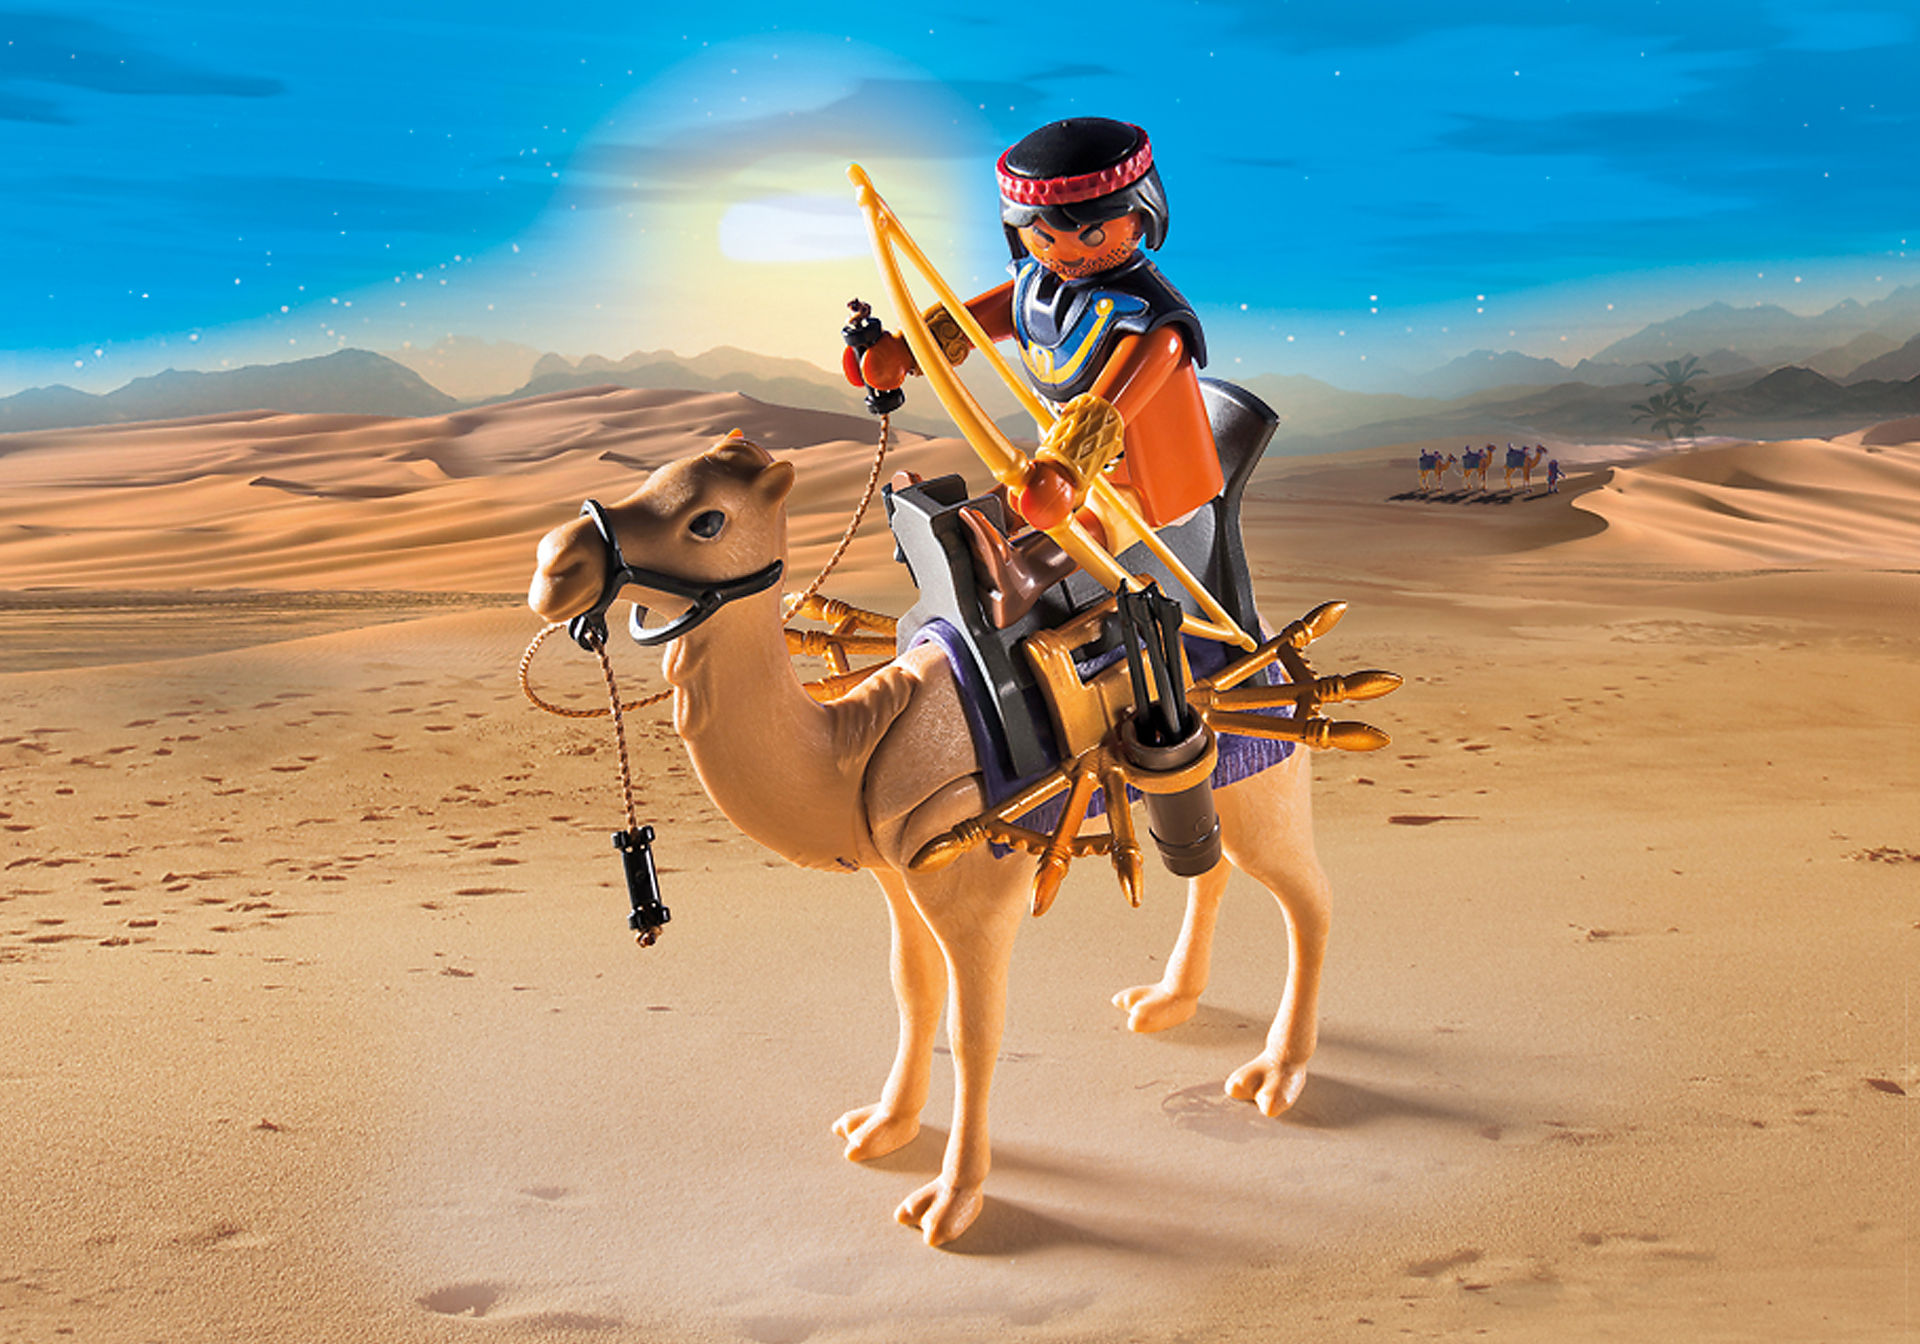 http://media.playmobil.com/i/playmobil/9167_product_extra1/Egyptian Warrior with Camel